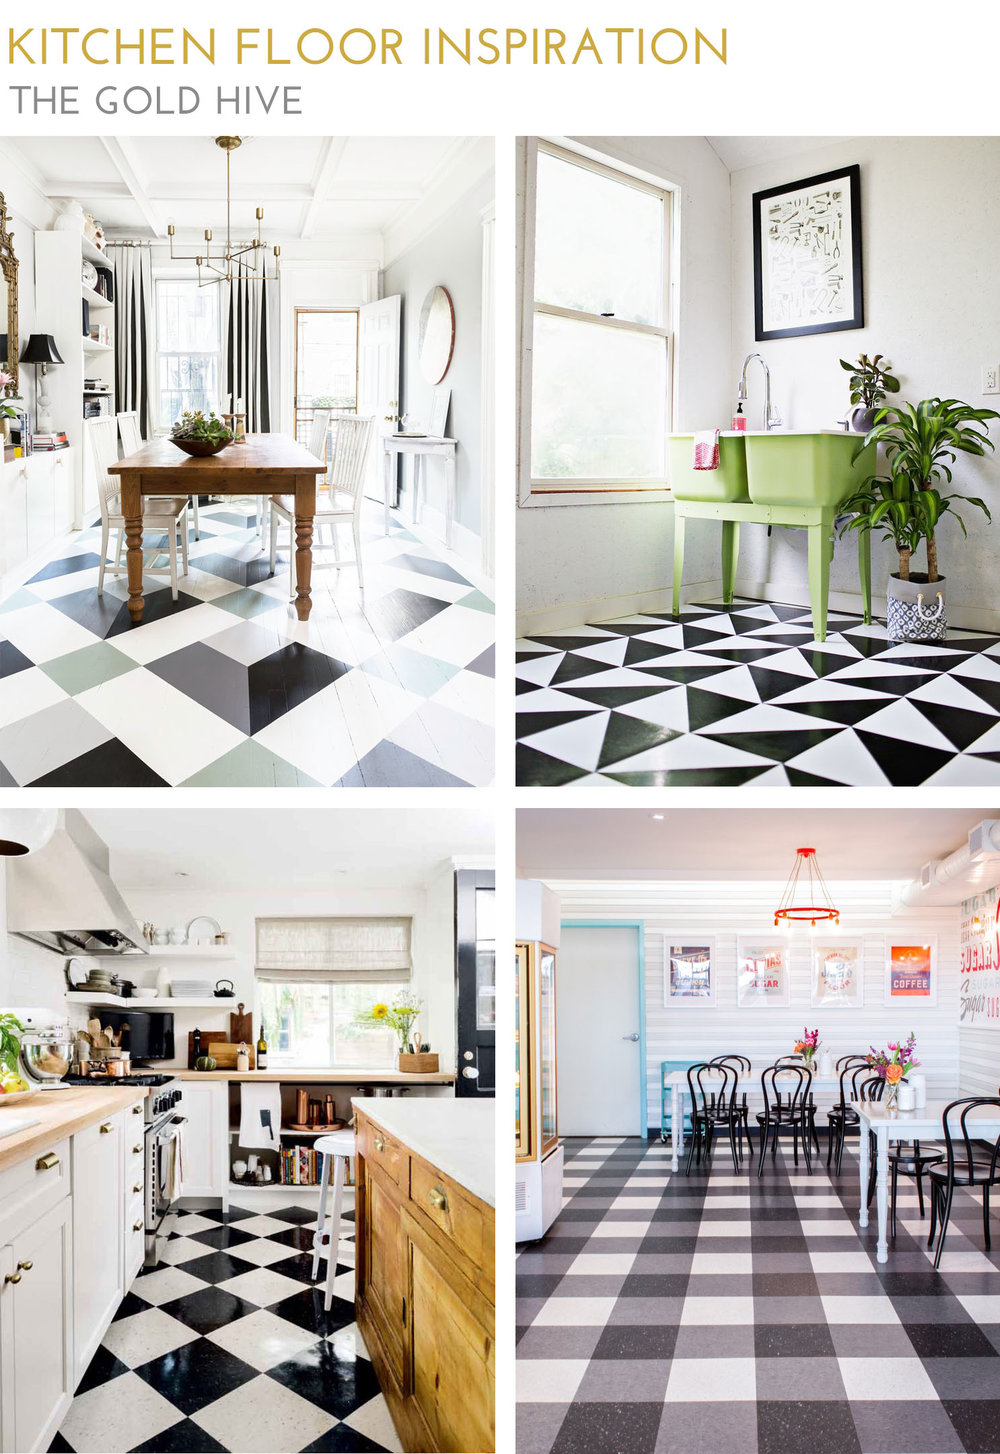 The Gold Hive Graphic Flooring Inspiration